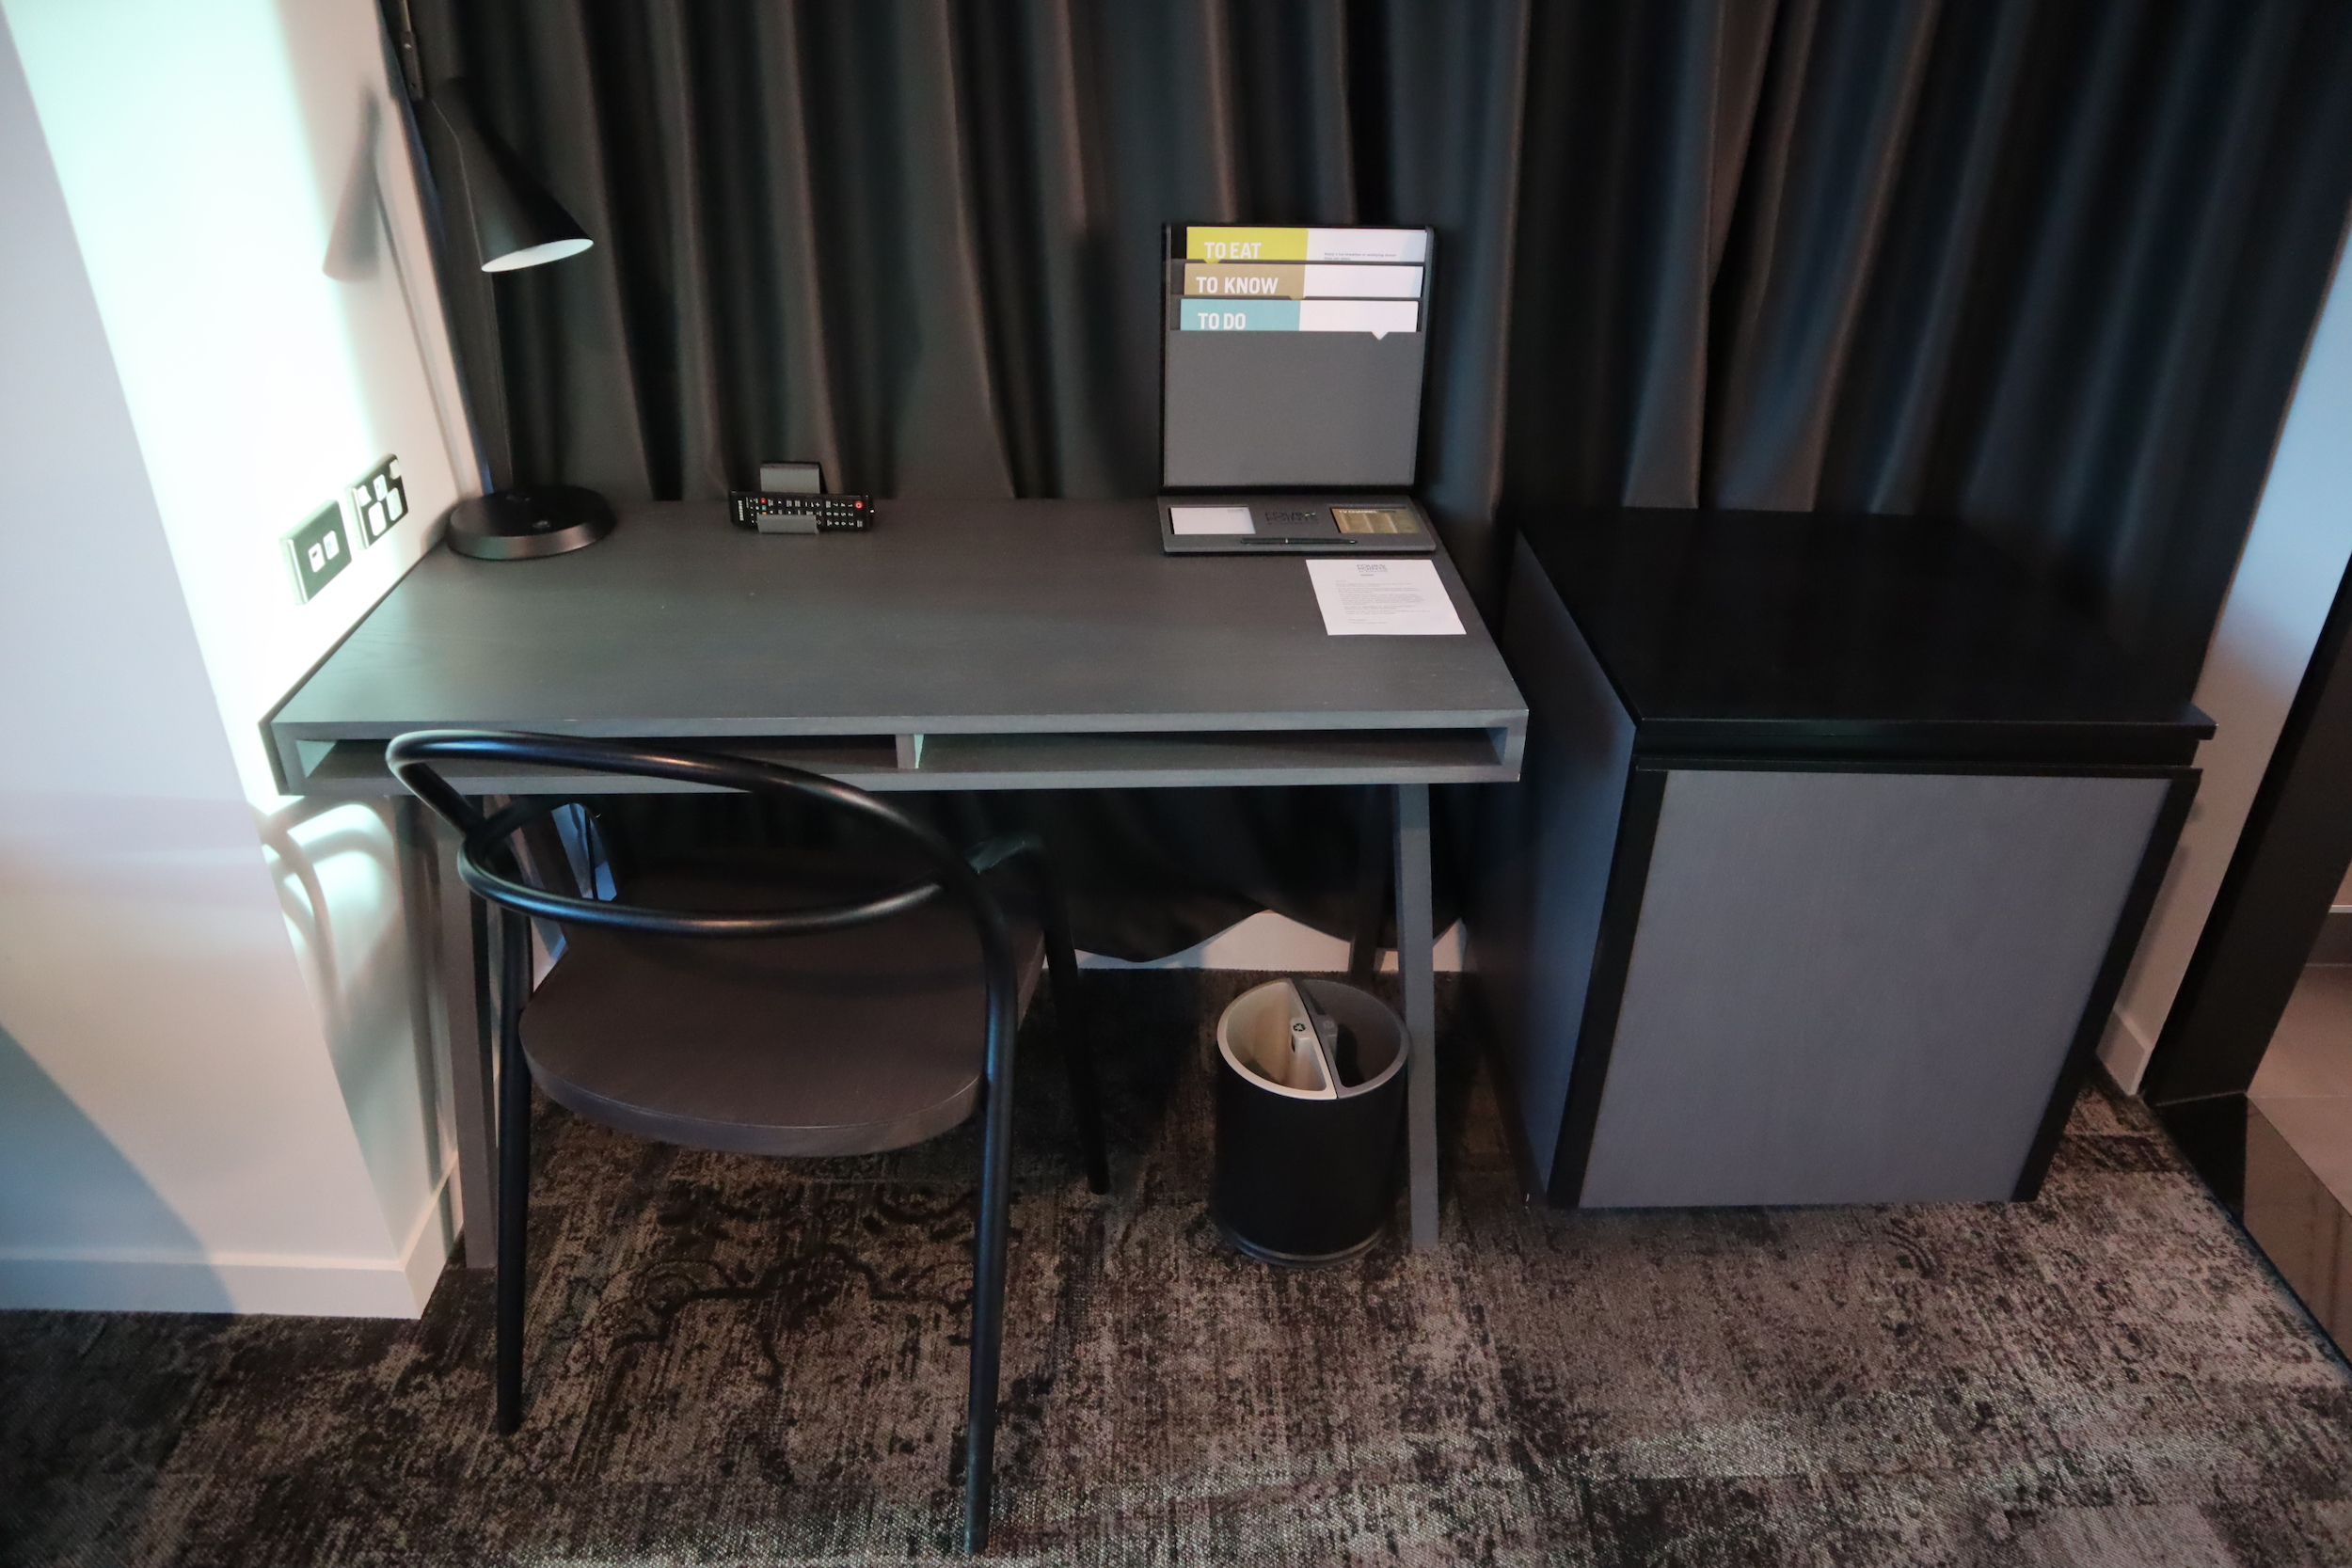 Four Points by Sheraton Auckland – Corner Room desk